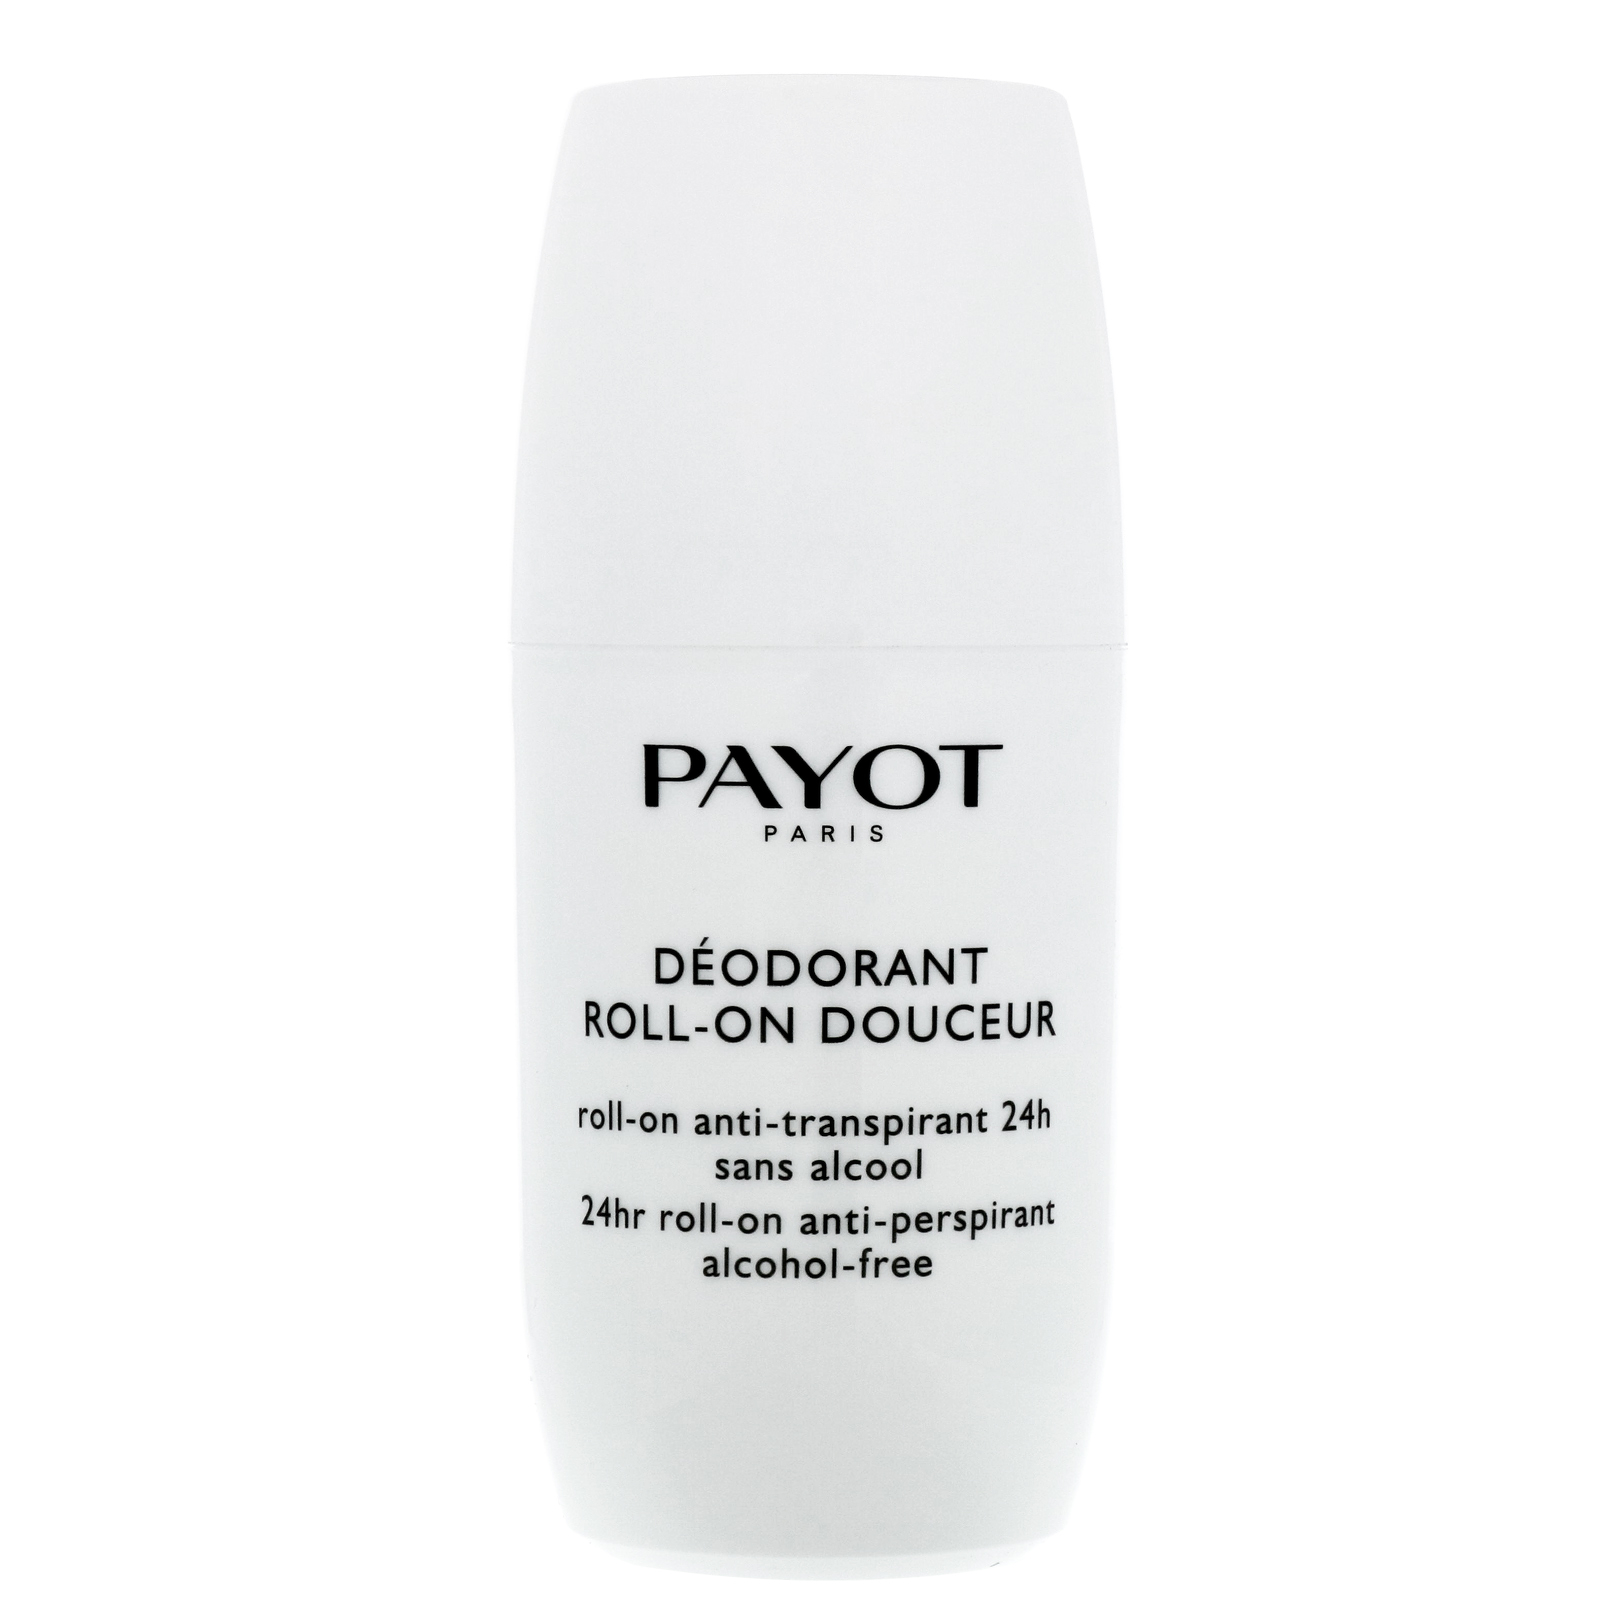 Payot Paris Rituel Corps 24-hr Roll-On Anti-perspirant Alcohol-Free 75ml